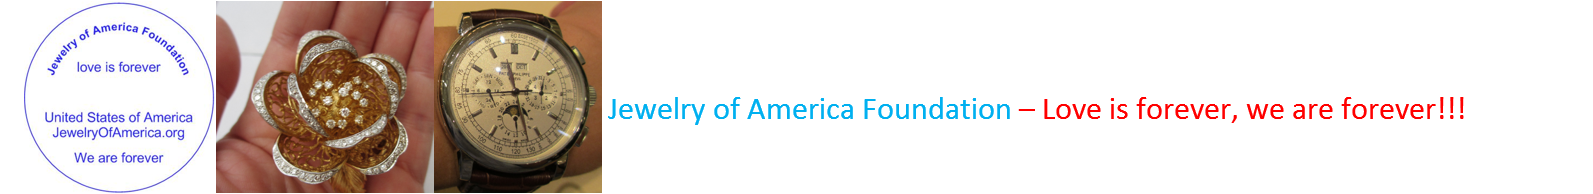 Jewelry of America Foundation